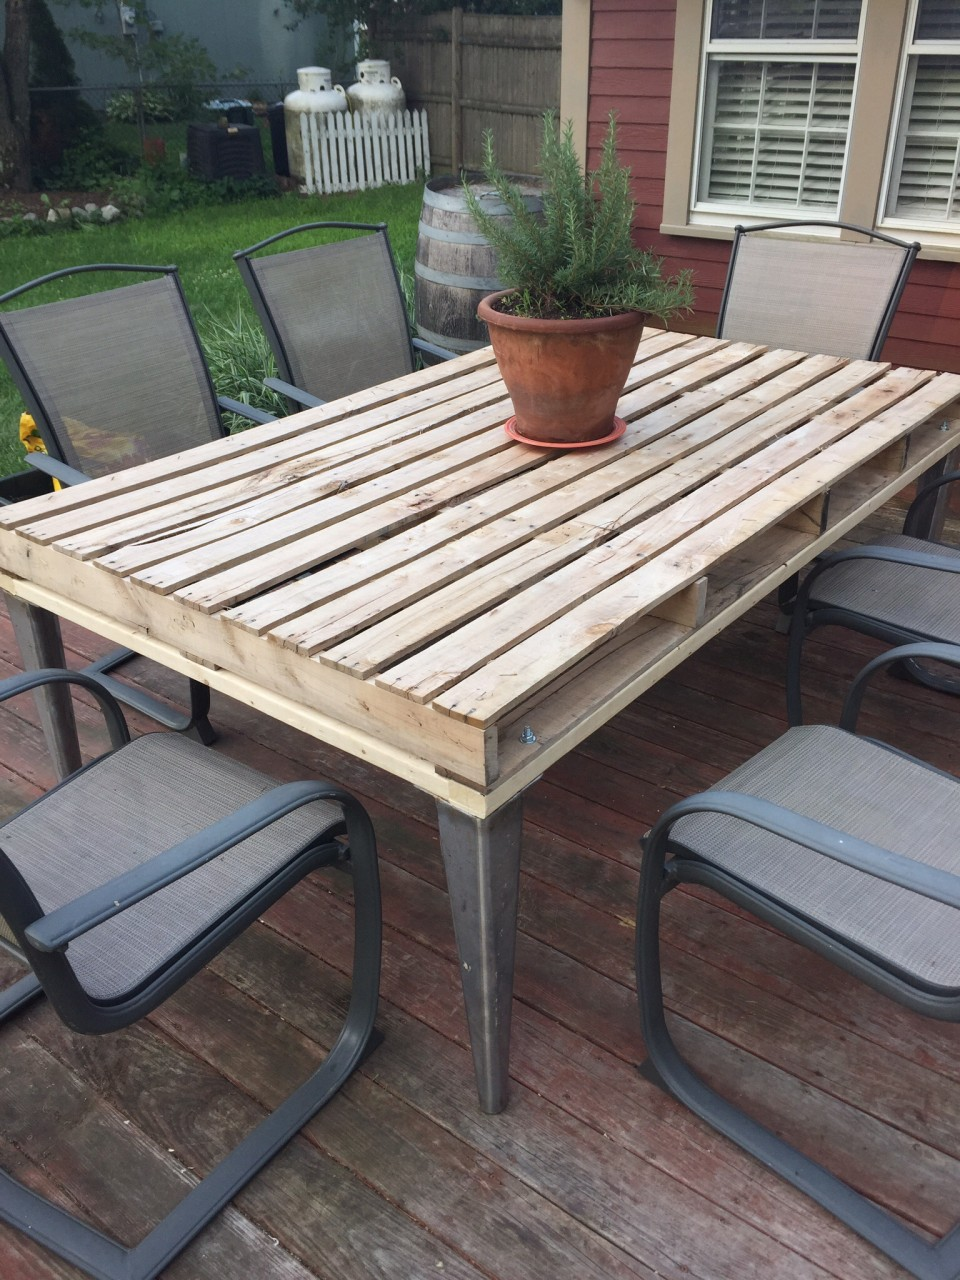 Patio coffee table out of wooden pallets pallet ideas - Fabriquer une table basse en palette ...